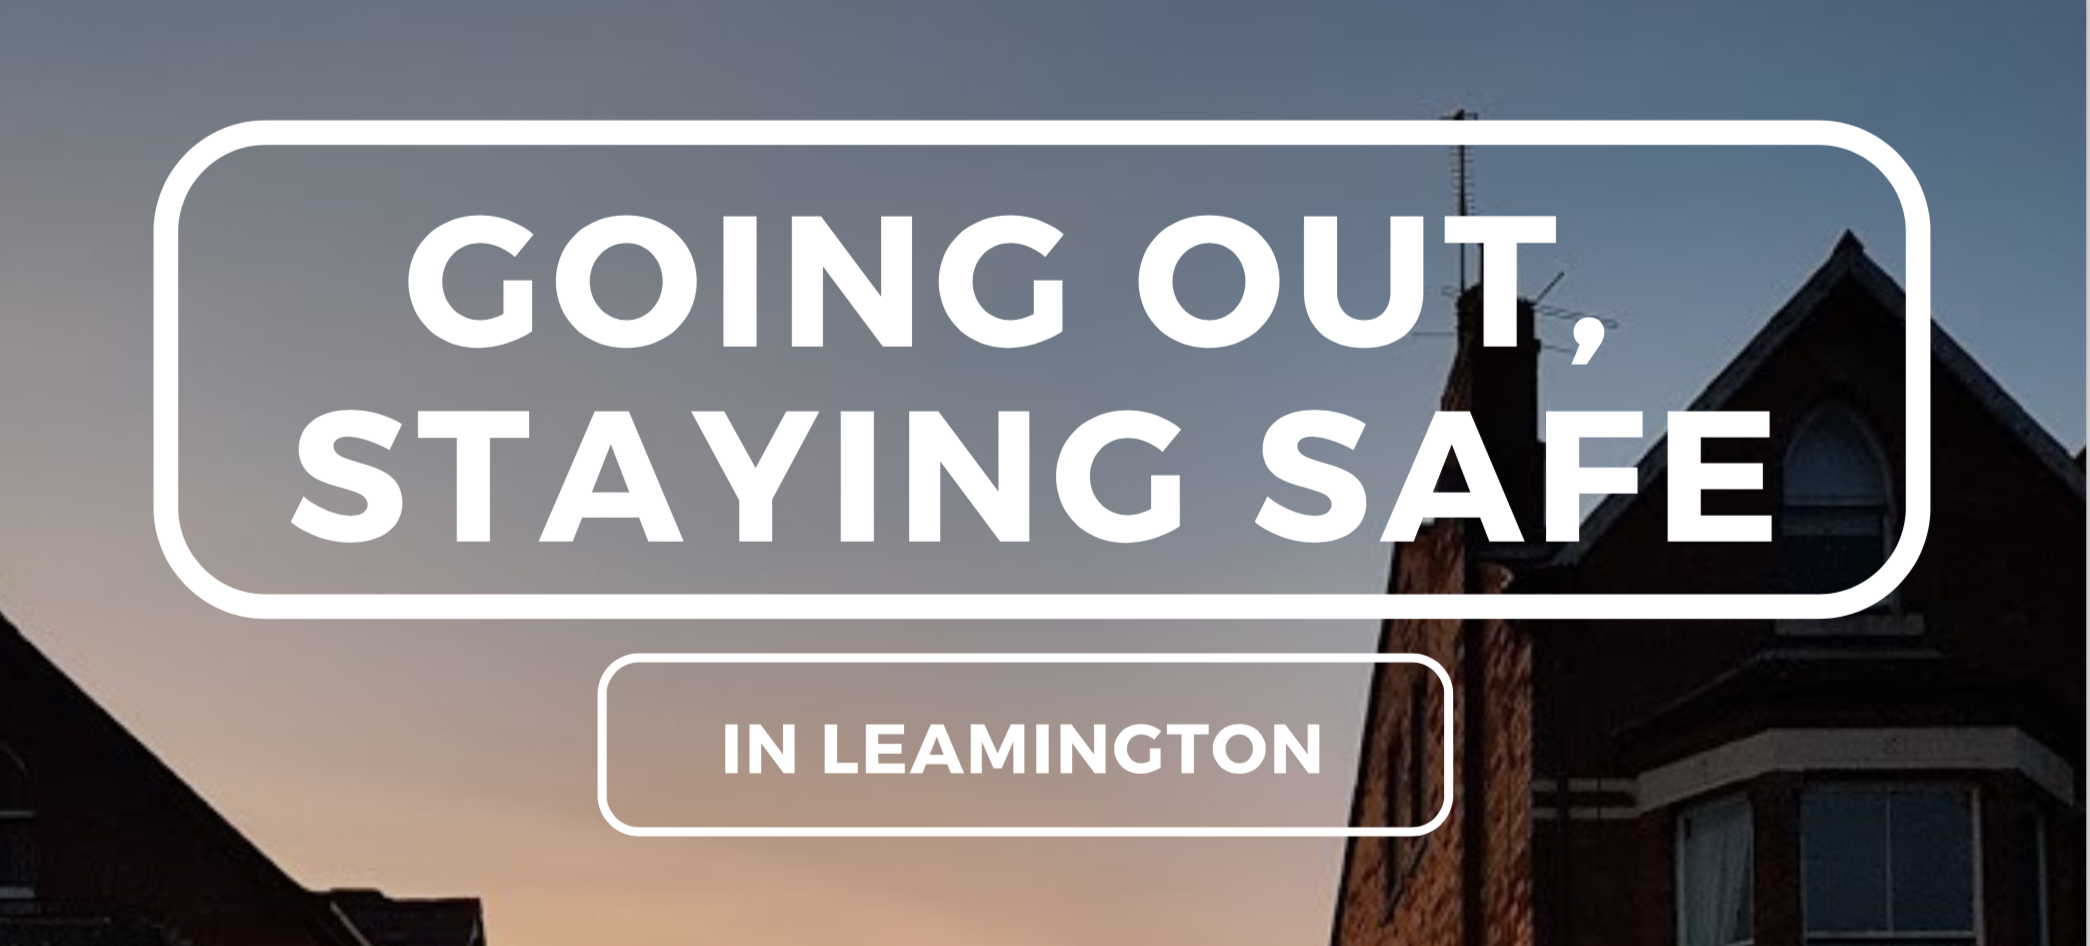 Going Out Staying Safe banner